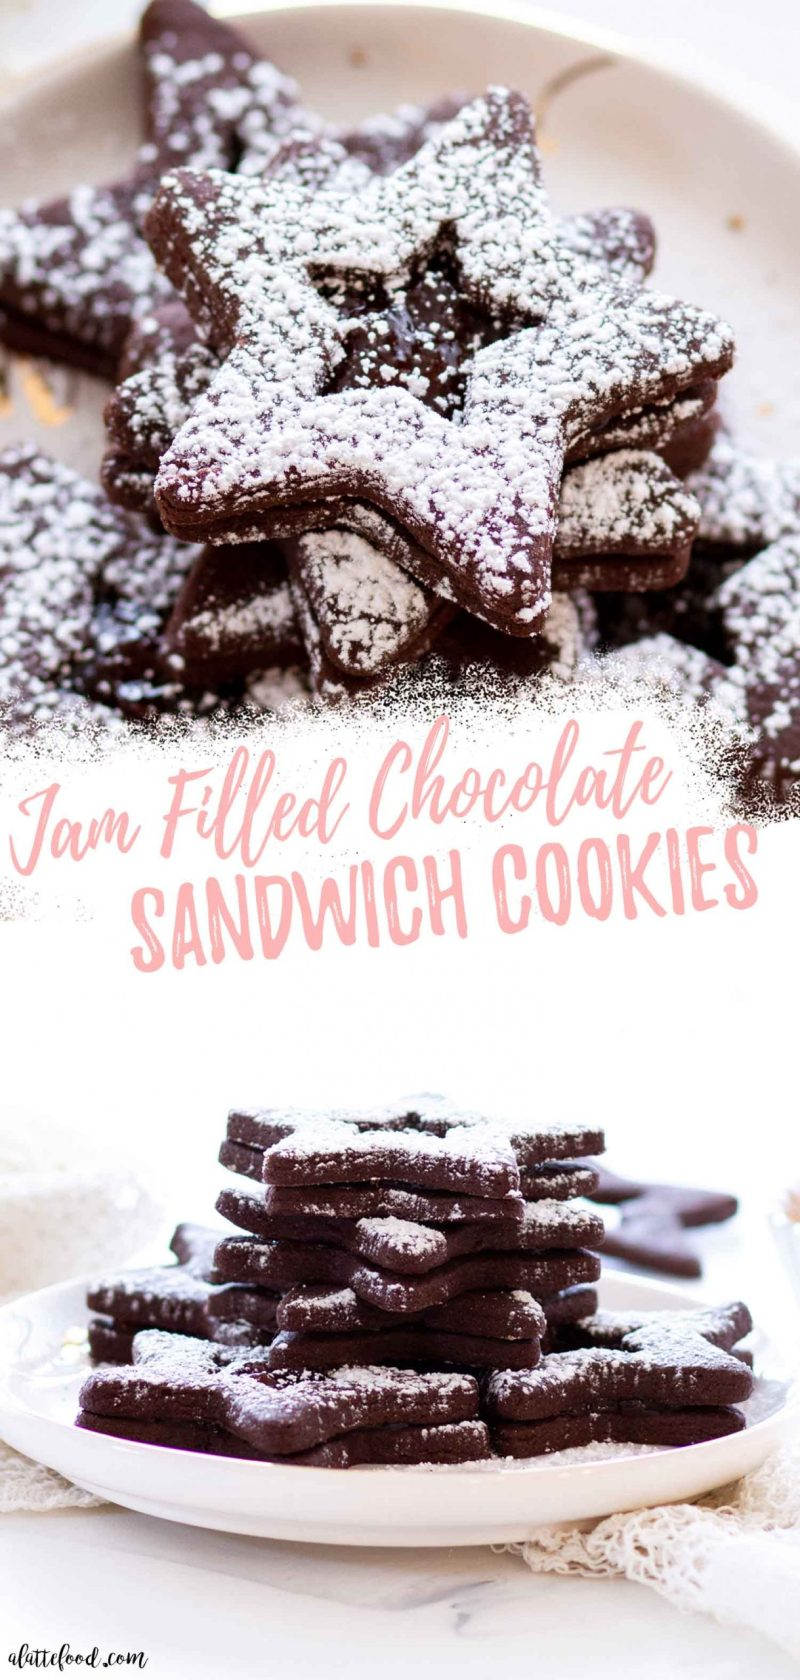 Strawberry Jam Chocolate Sandwich Cookies on a marble board photo collage